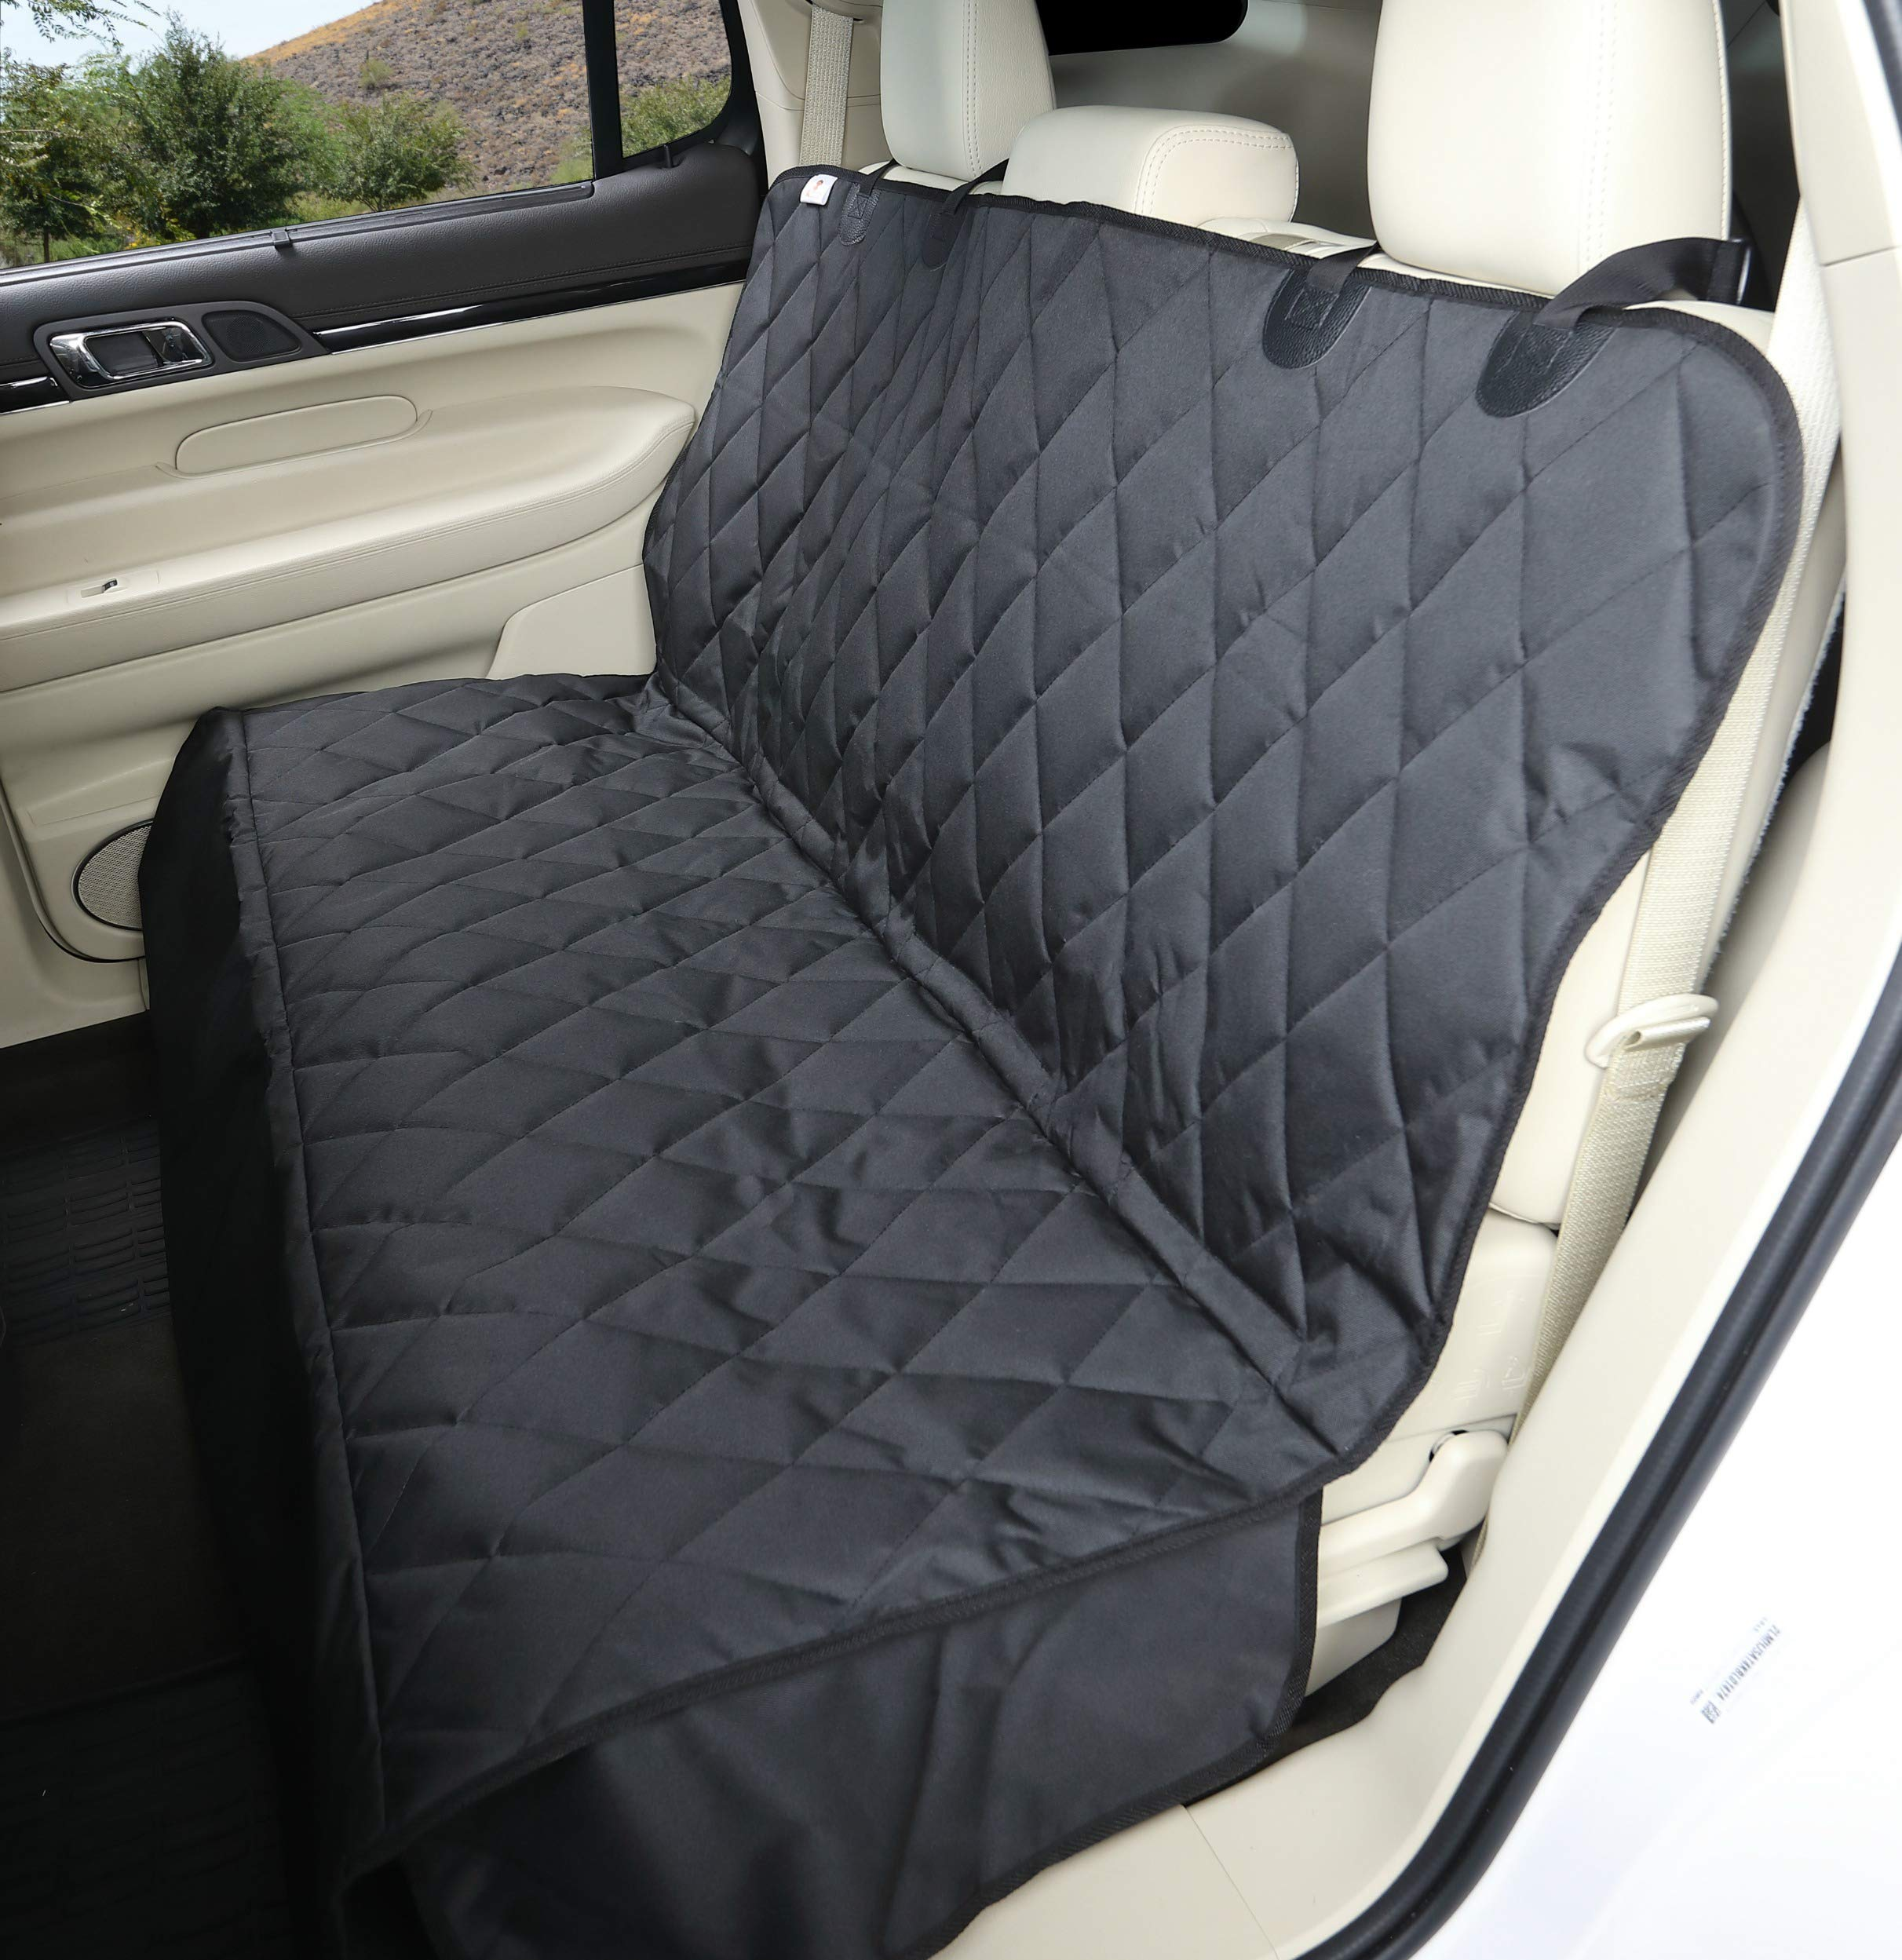 4Knines Dog Seat Cover with Hammock for Full Size Trucks and Large SUVs - Black Extra Large - USA Based Company by 4Knines (Image #2)